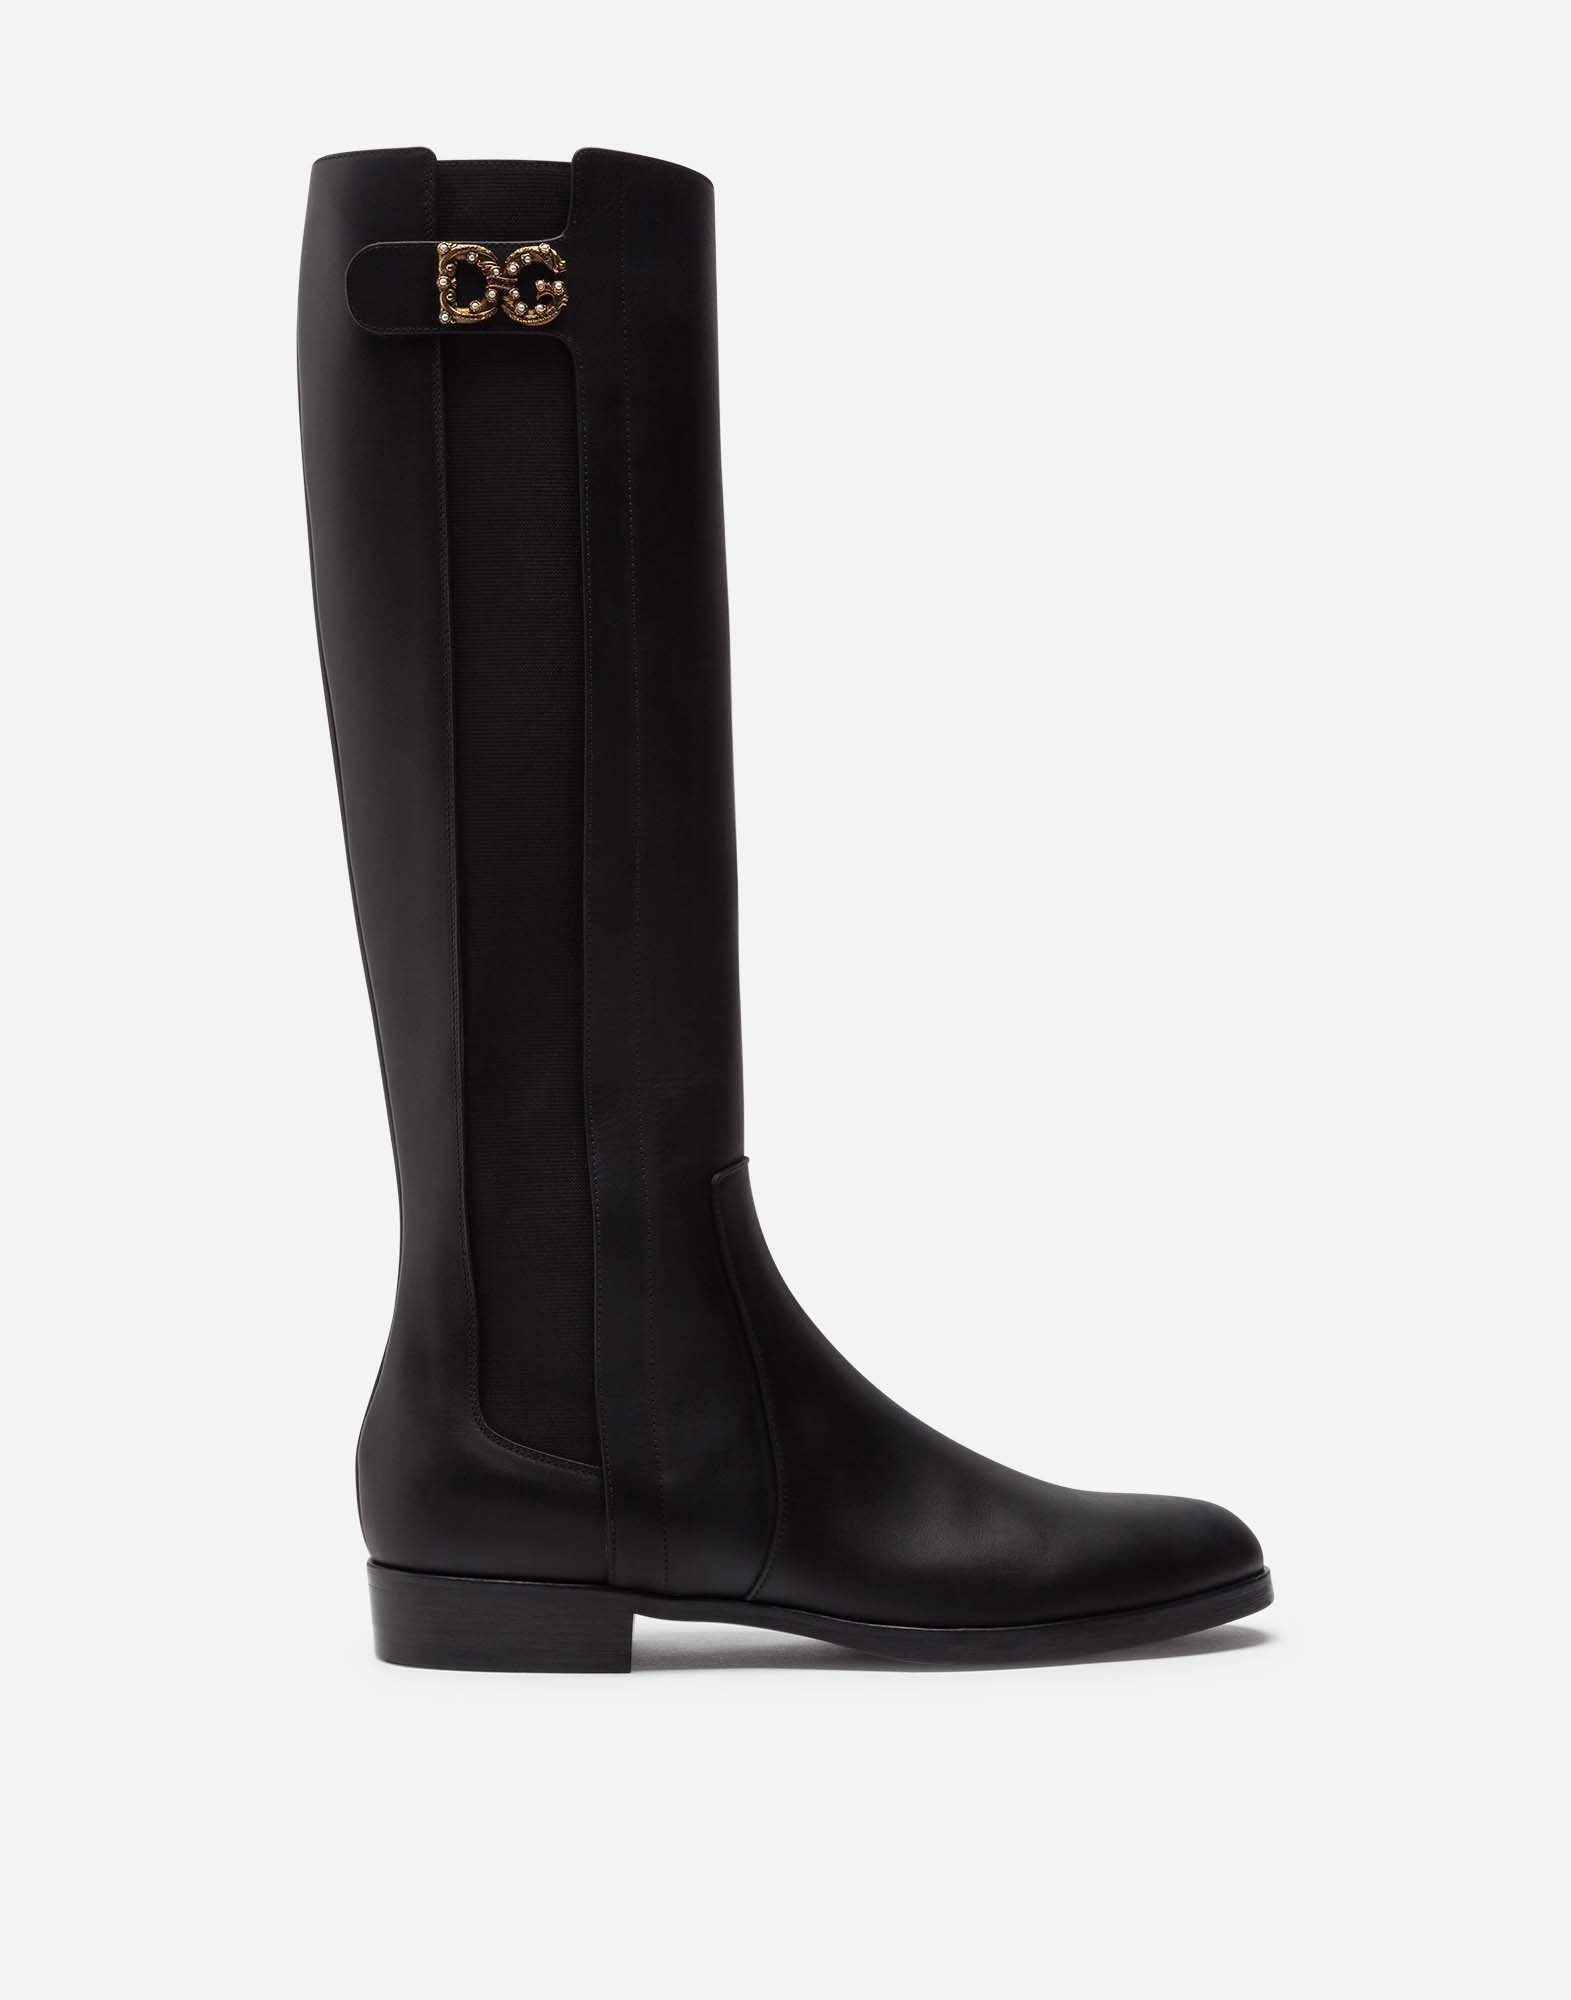 d&g the one mens gift set boots